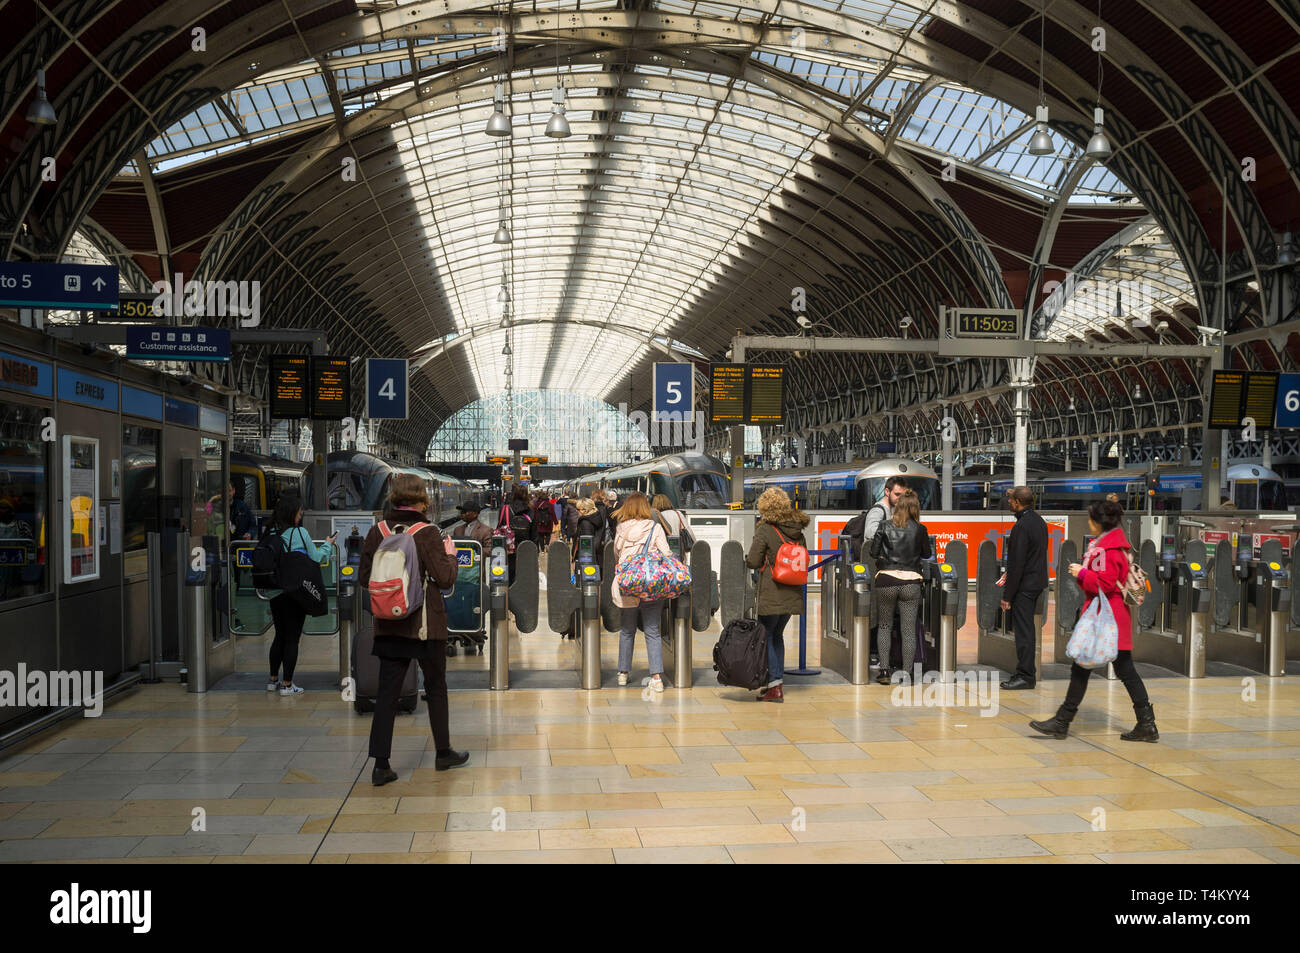 Travellers go through the turnstiles to their trains at Paddington Station, London - Stock Image